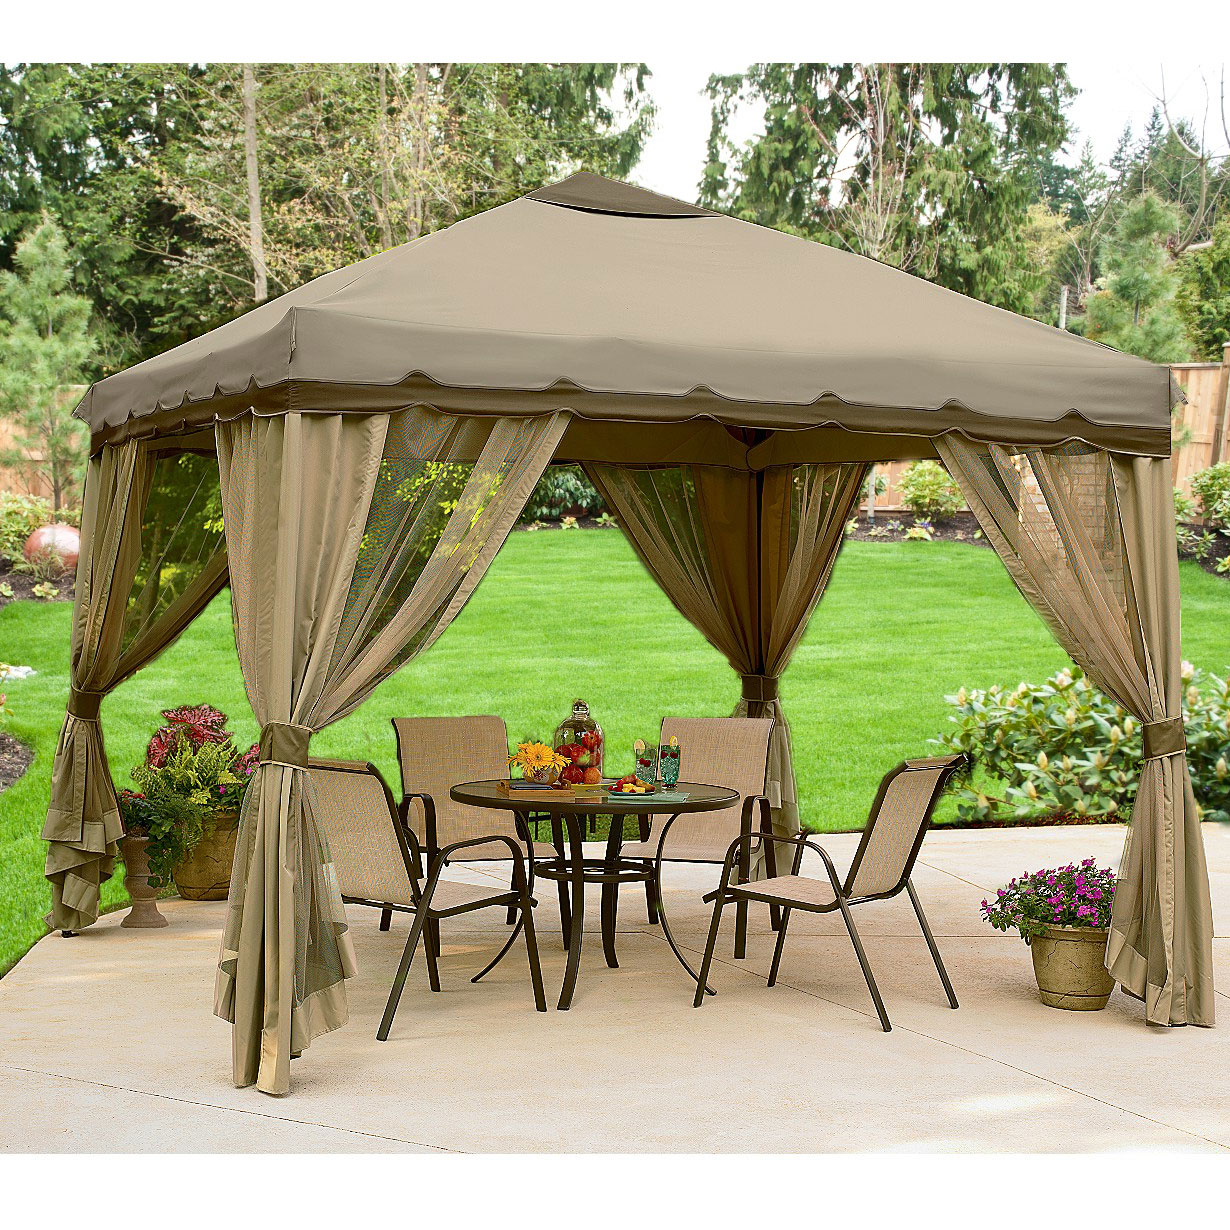 10 x 10 Portable Gazebo Replacement Canopy and Netting Garden Winds